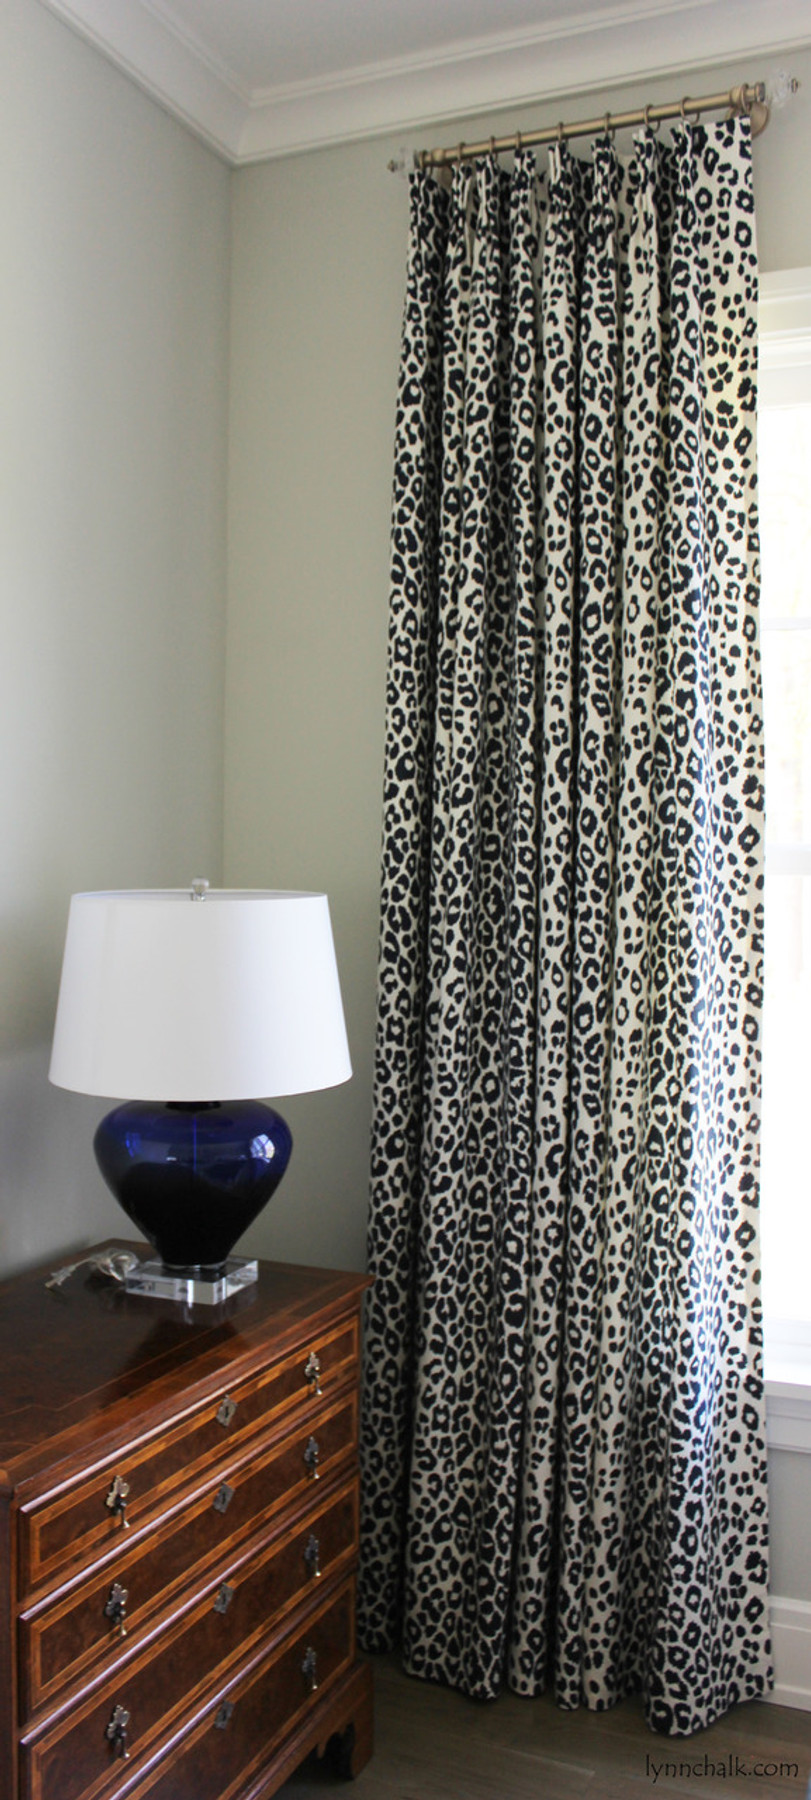 Custom Pinch Pleated Drapes by Lynn Chalk in Schumacher Iconic Leopard in Ink